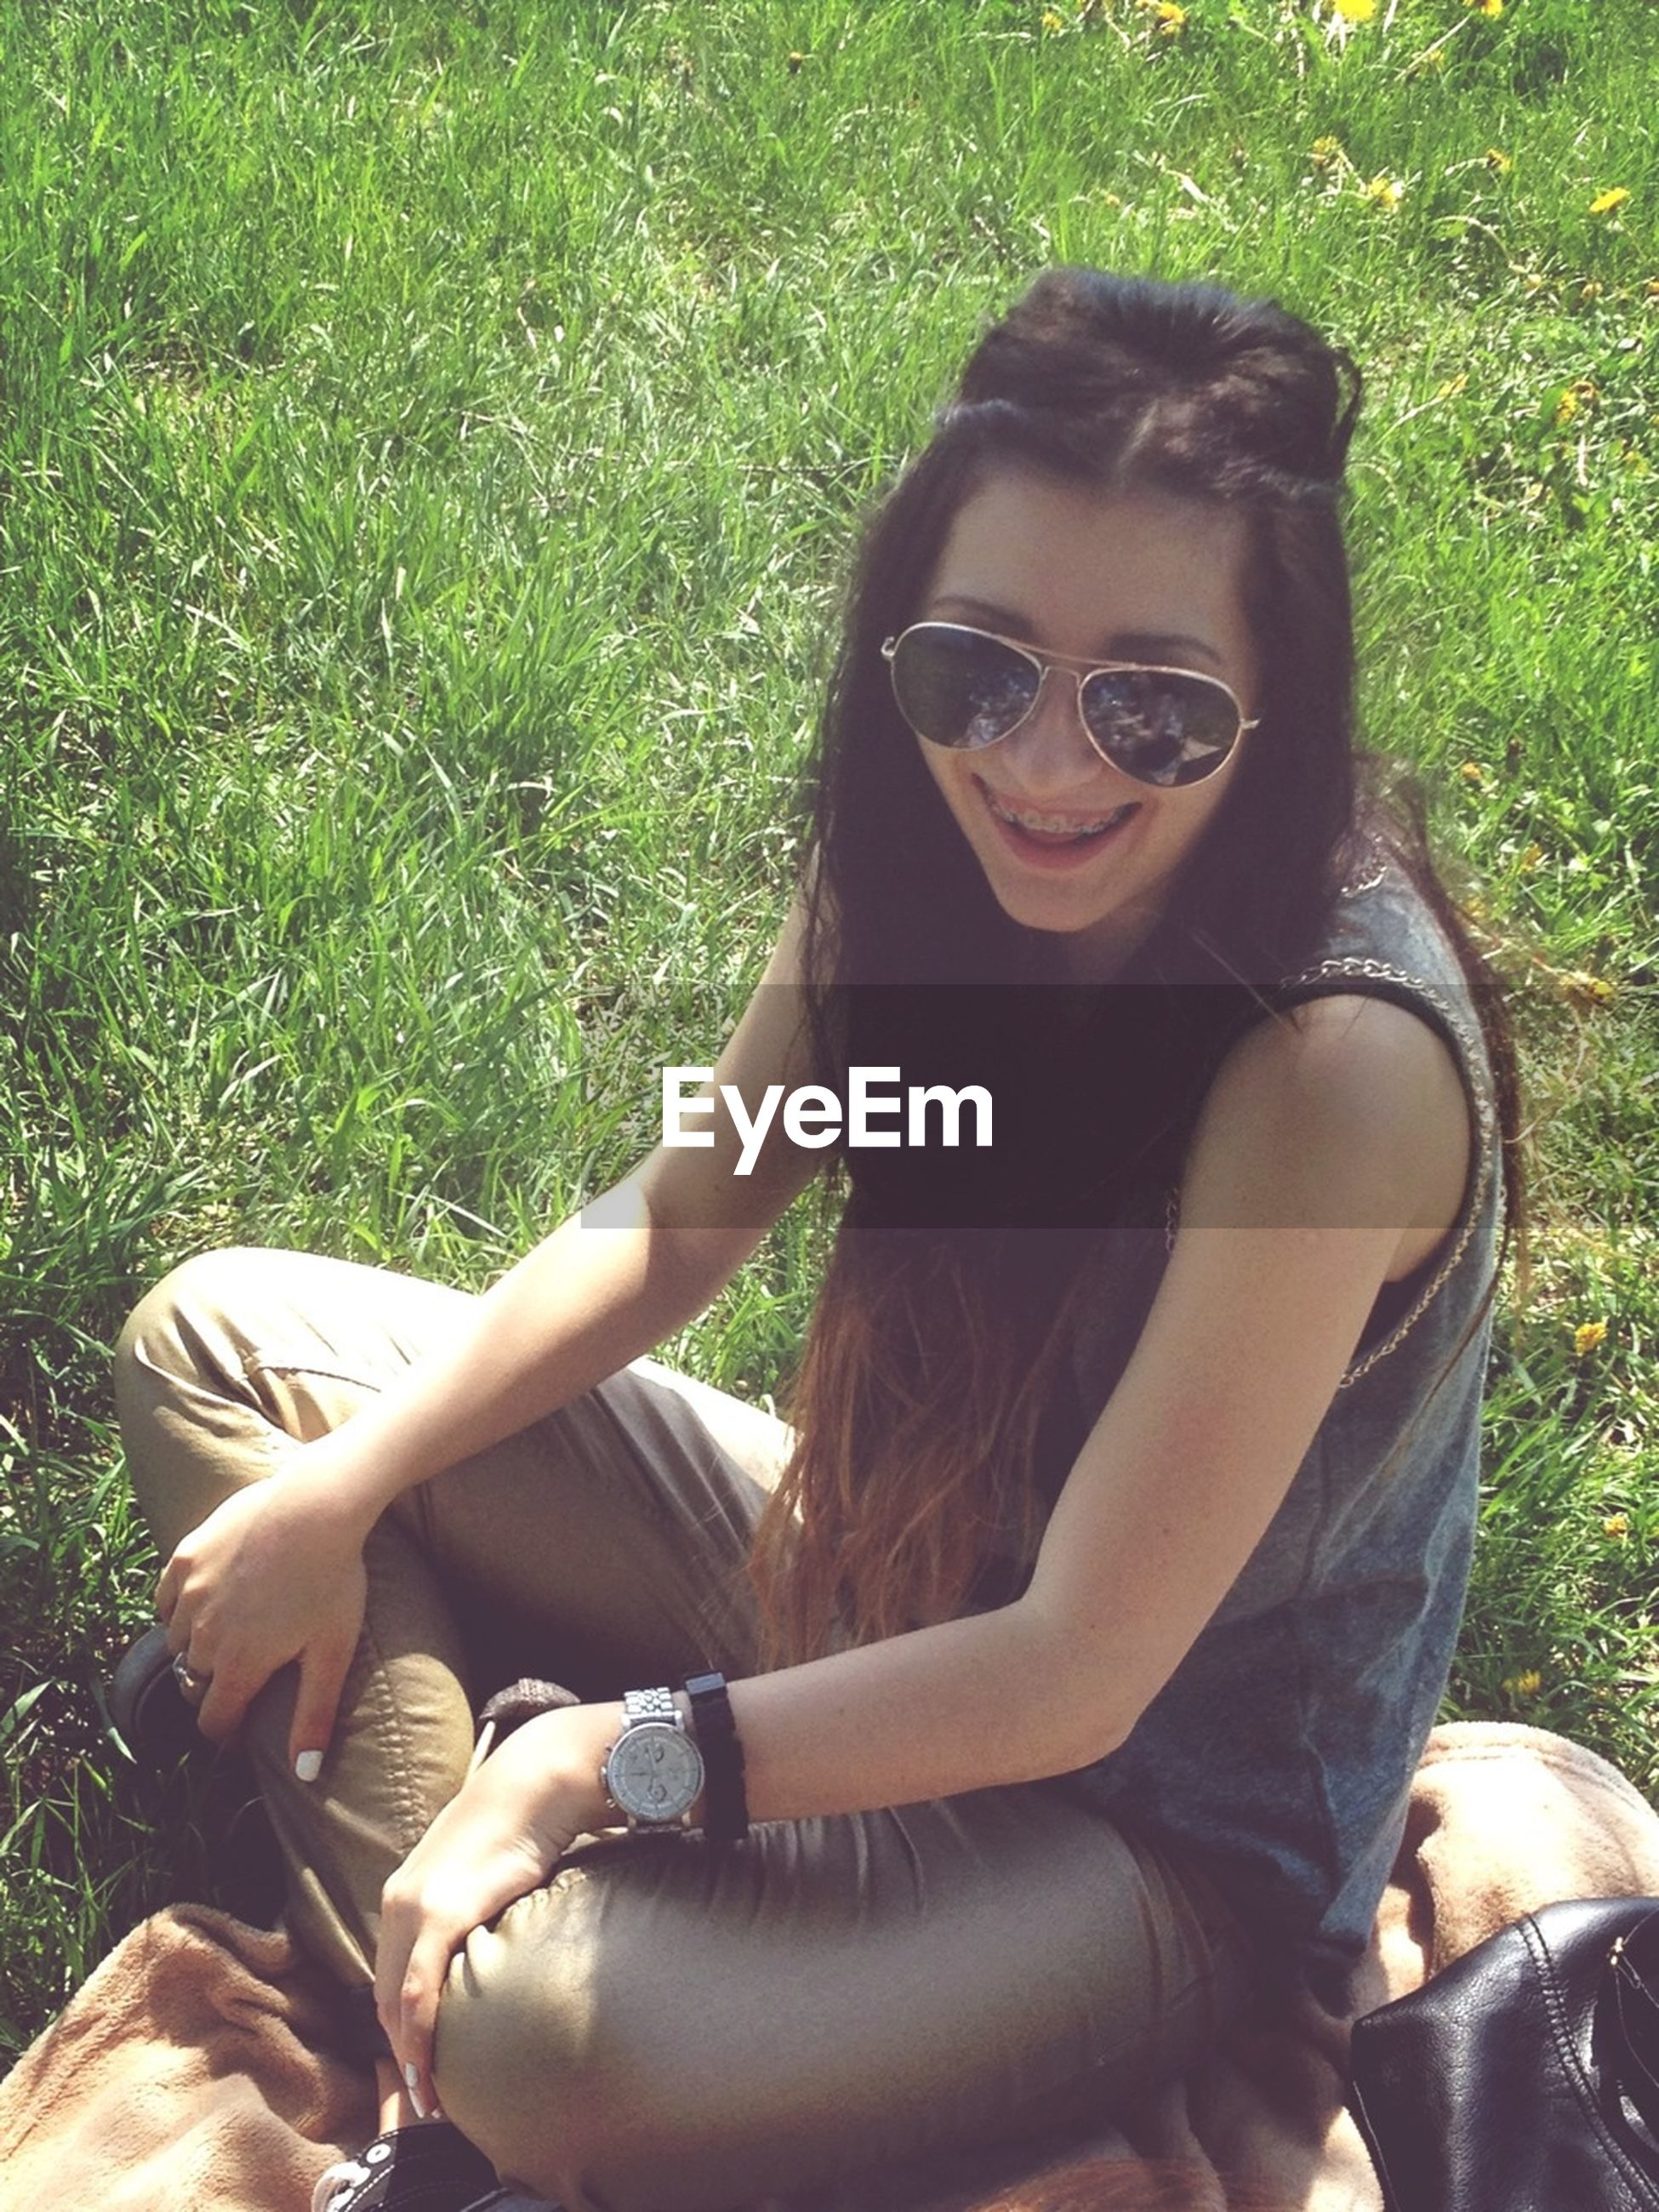 young adult, person, lifestyles, leisure activity, looking at camera, portrait, young women, casual clothing, sitting, grass, smiling, sunglasses, relaxation, field, front view, happiness, sunlight